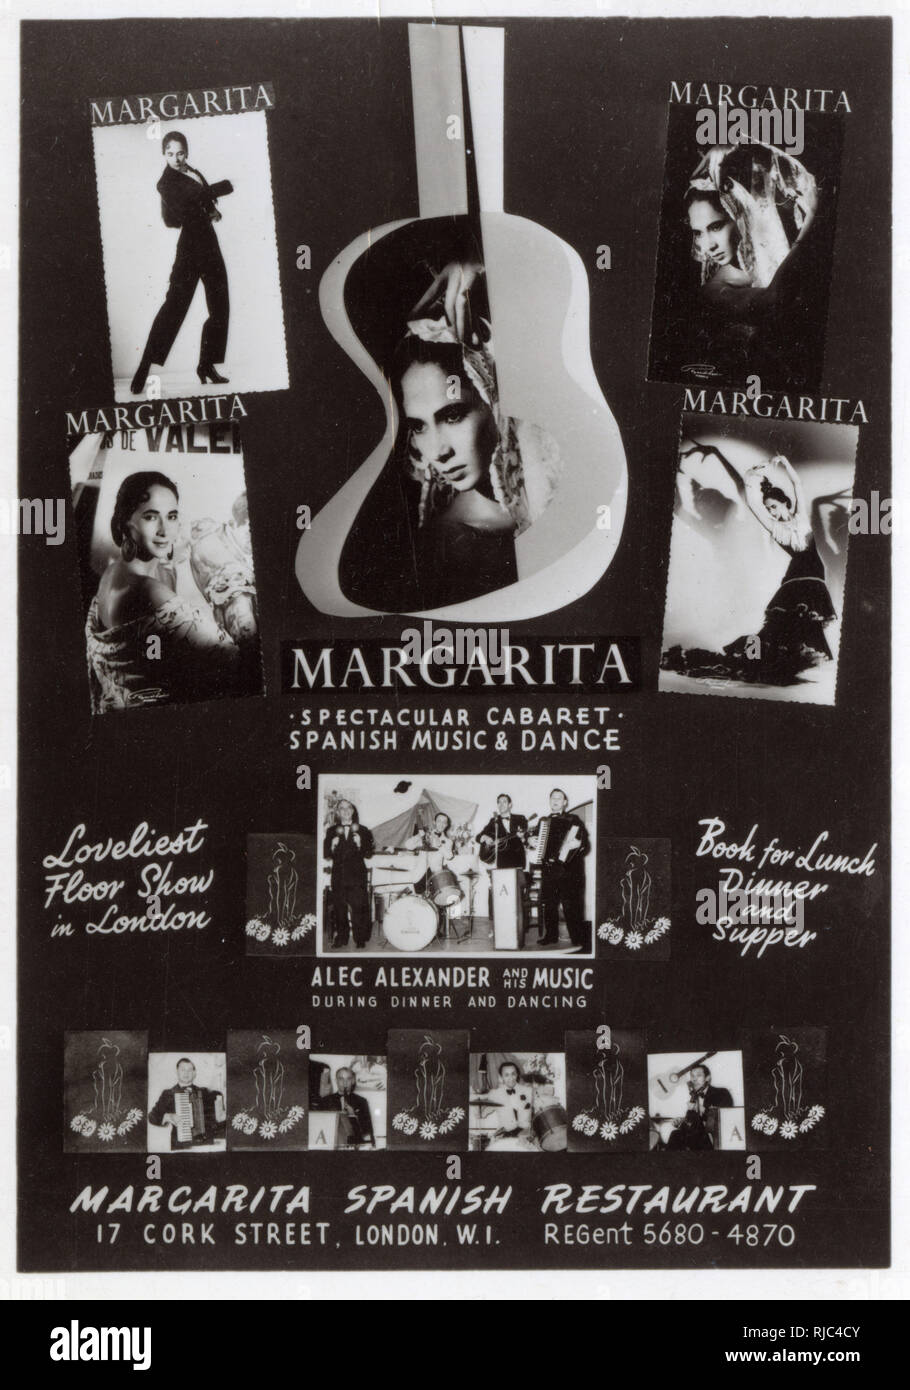 Promotional postcard for the Margarita Spanish Restaurant, 17 Cork Street, London. - Spectacular Cabaret - Spanish Music and Dance featuring Alec Alexander and his music (during Dinner and Dancing). Stock Photo